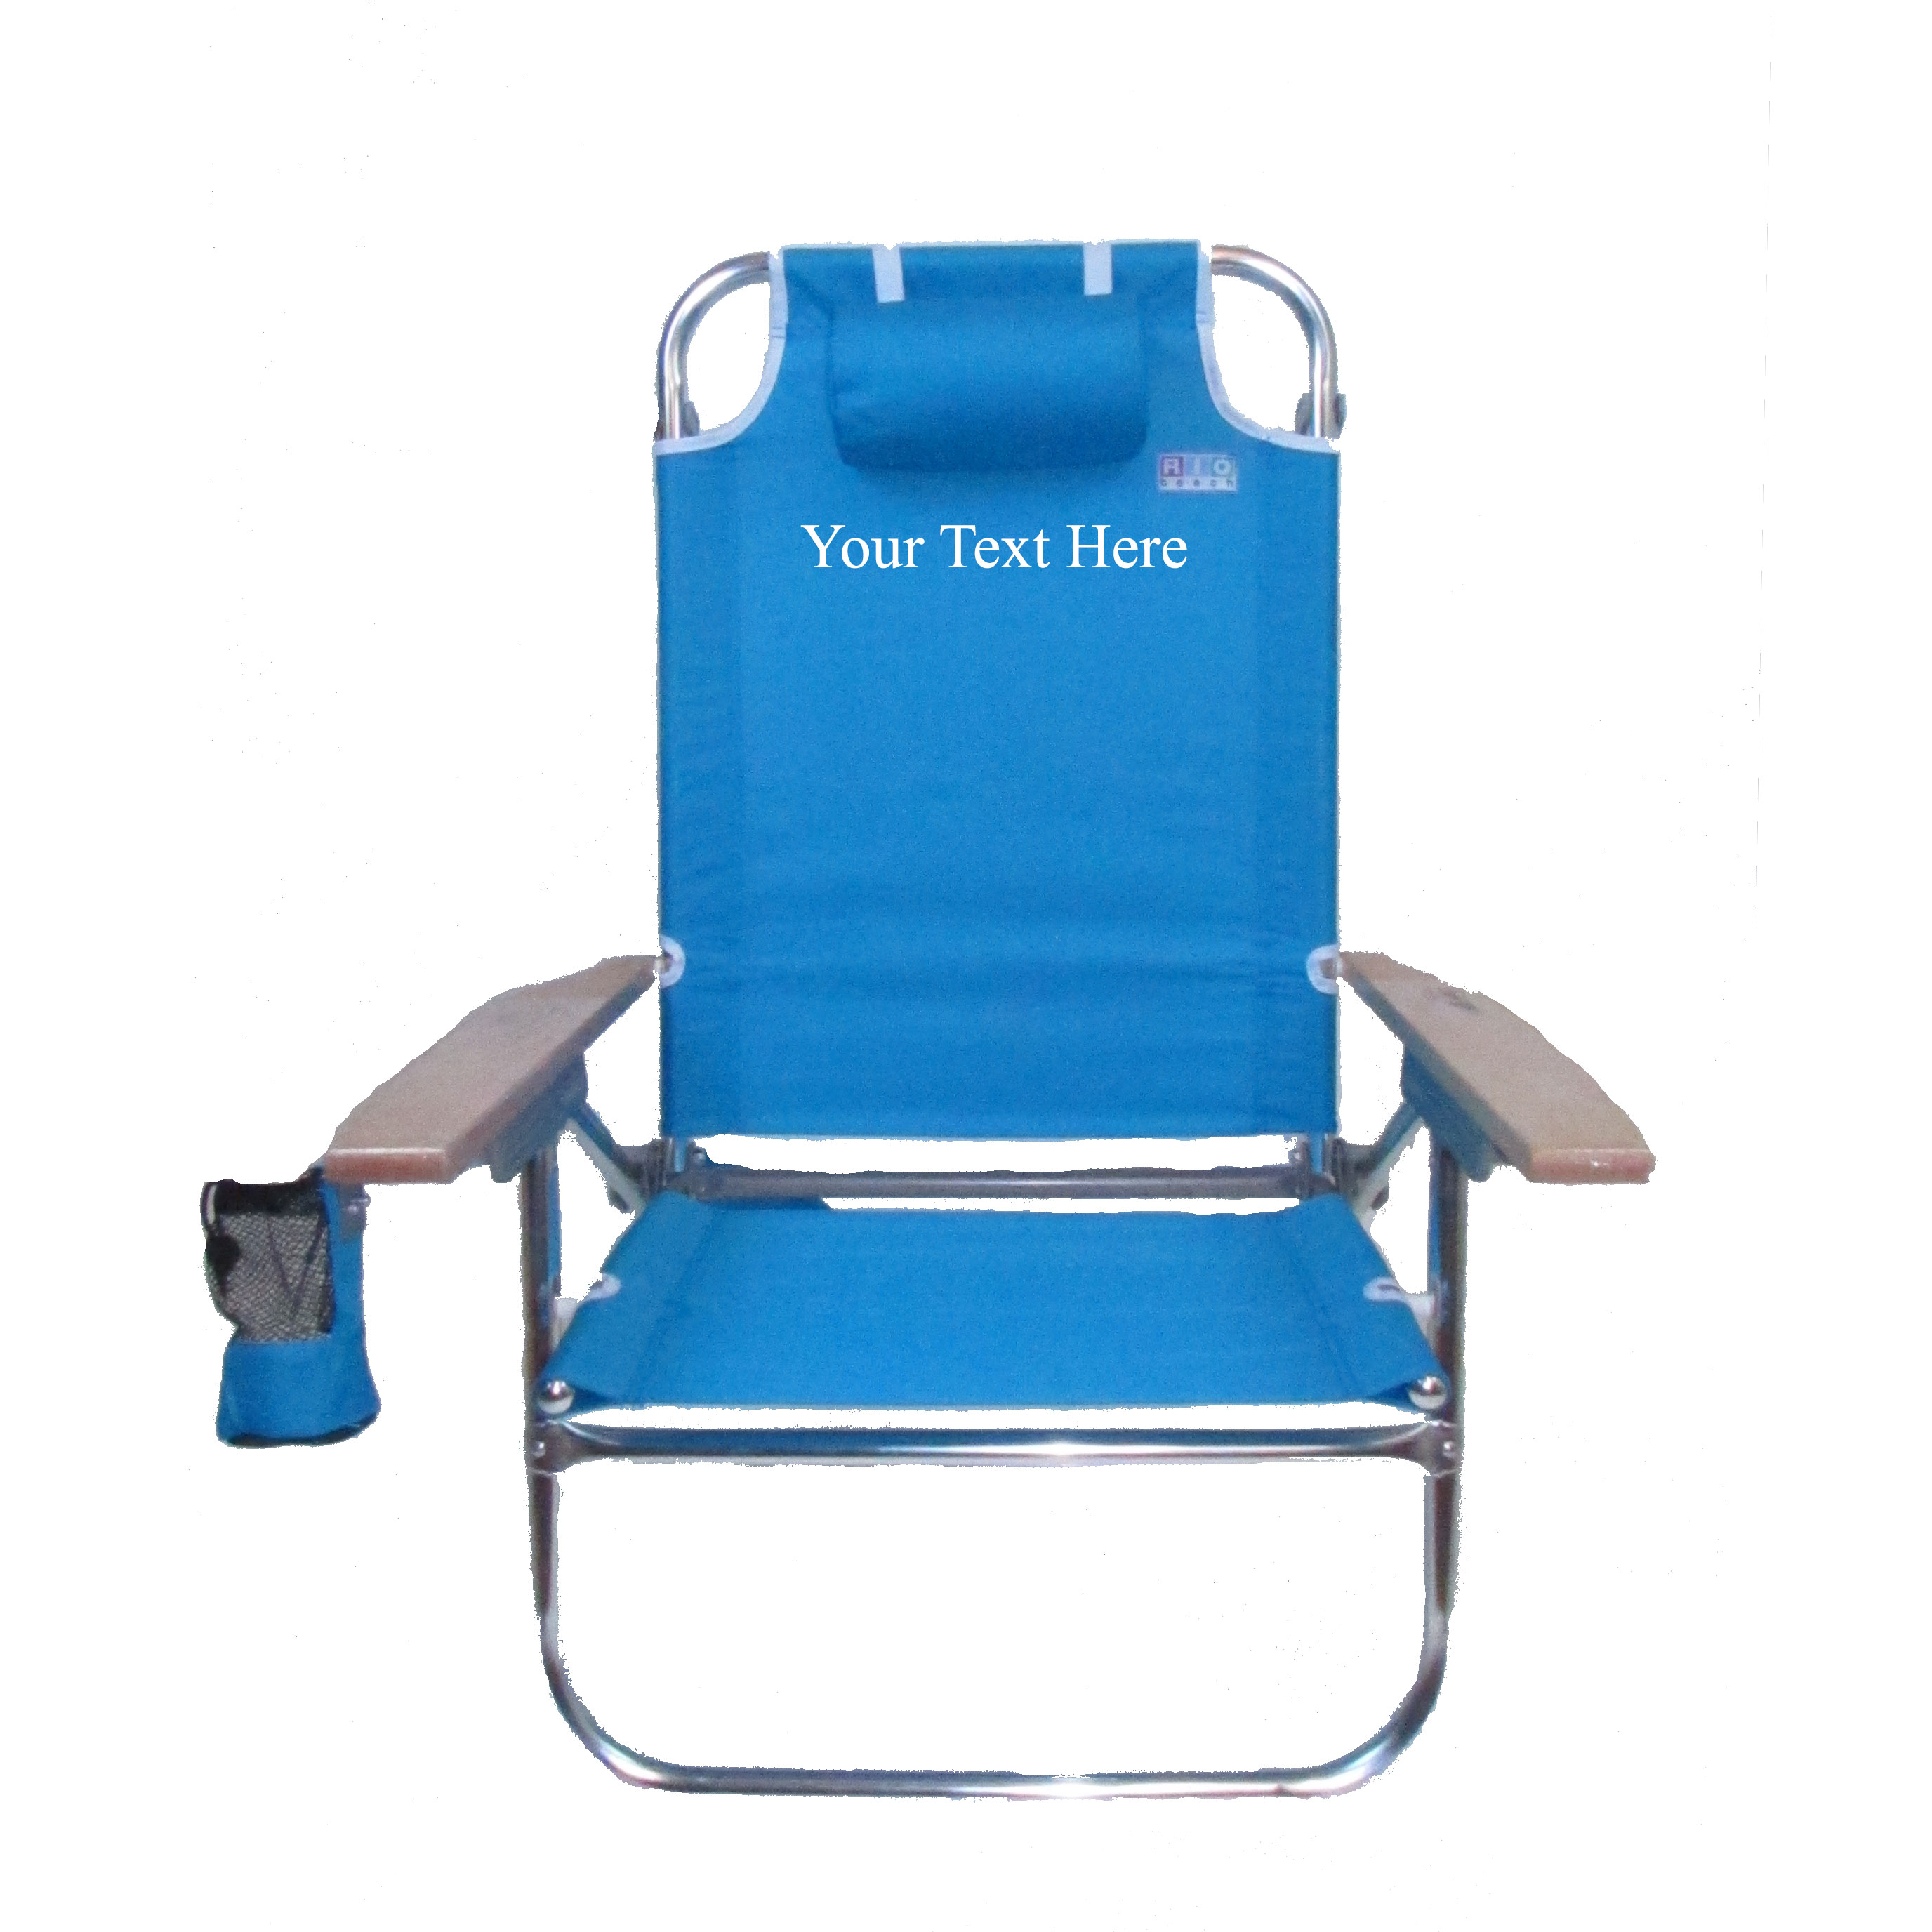 Imprinted High Boy Lay Flat Beach Chair by RIO Beach